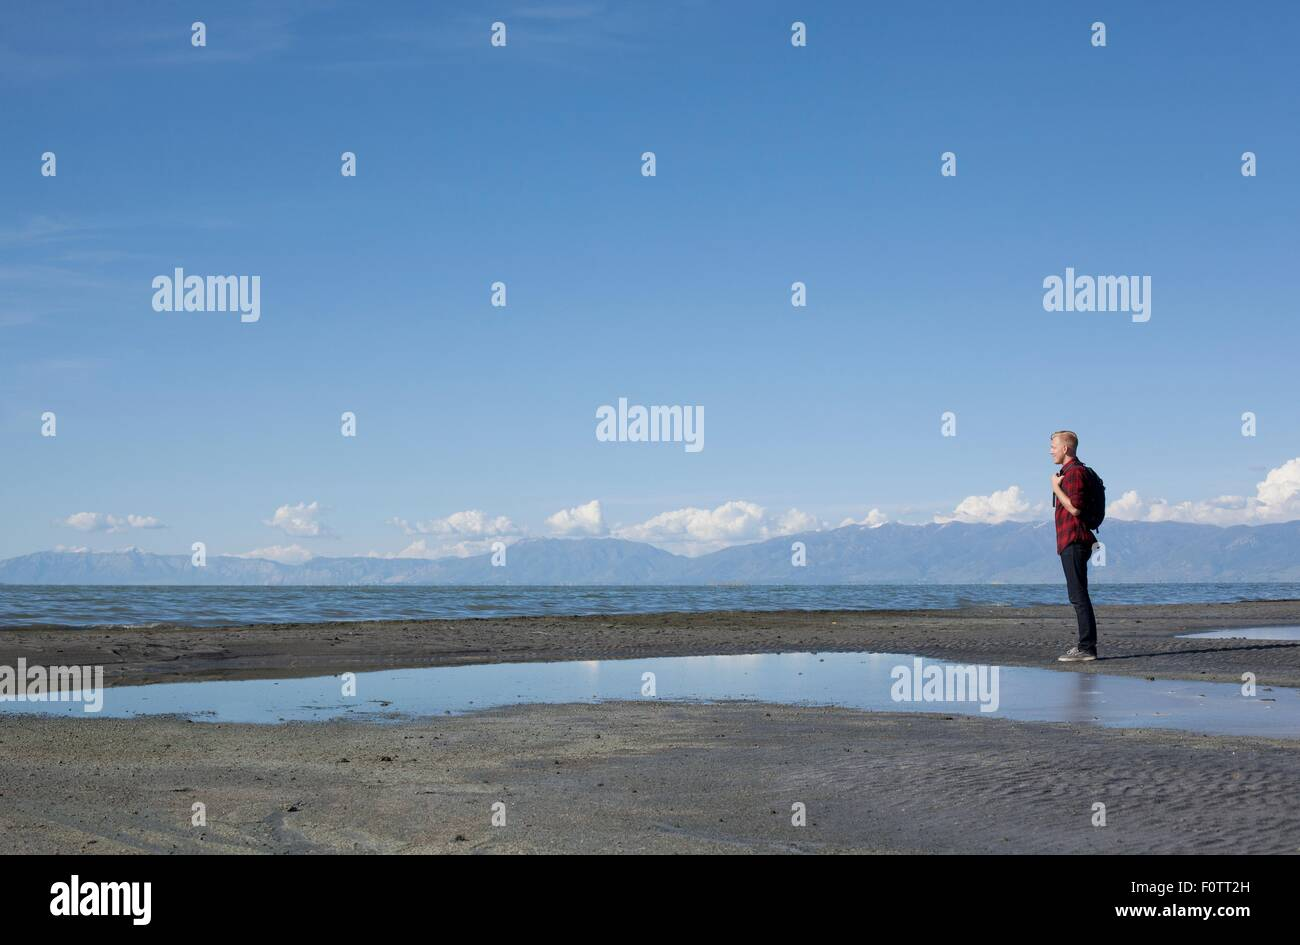 Side view of young man standing at waters edge looking out, Great Salt lake, Utah, USA - Stock Image